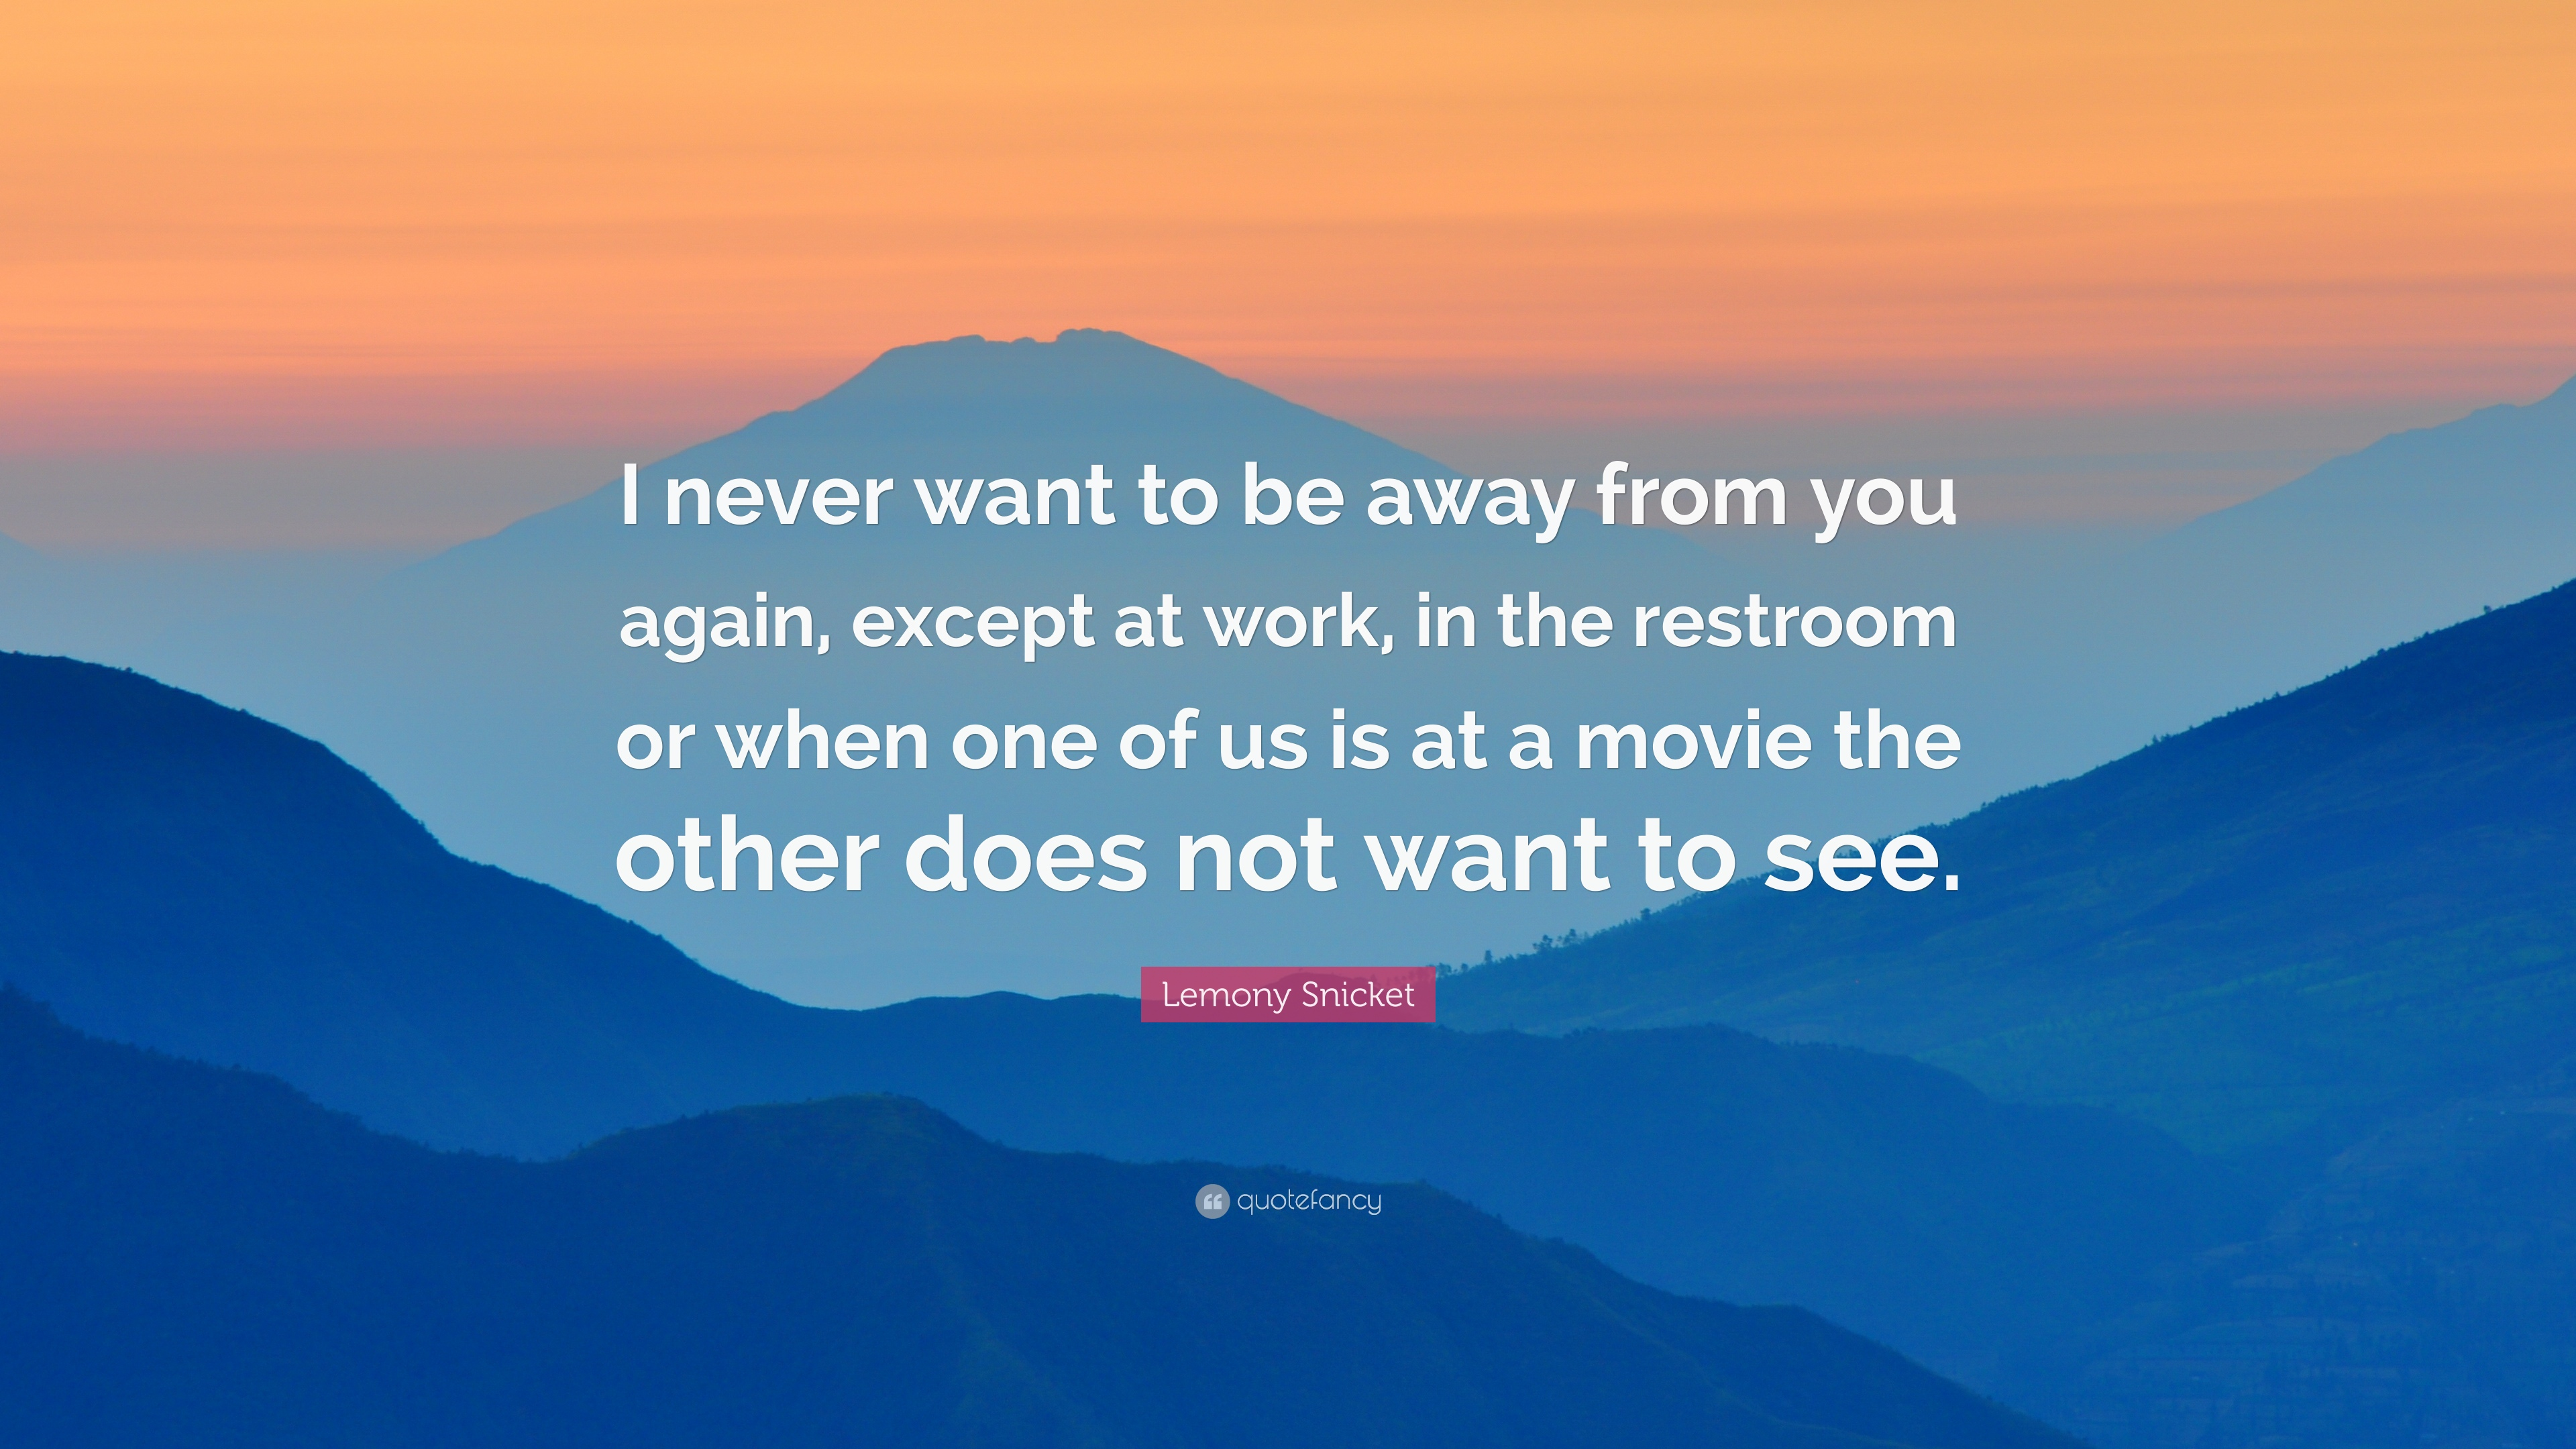 Lemony Snicket Quote I Never Want To Be Away From You Again Except At Work In The Restroom Or When One Of Us Is At A Movie The Other Does N